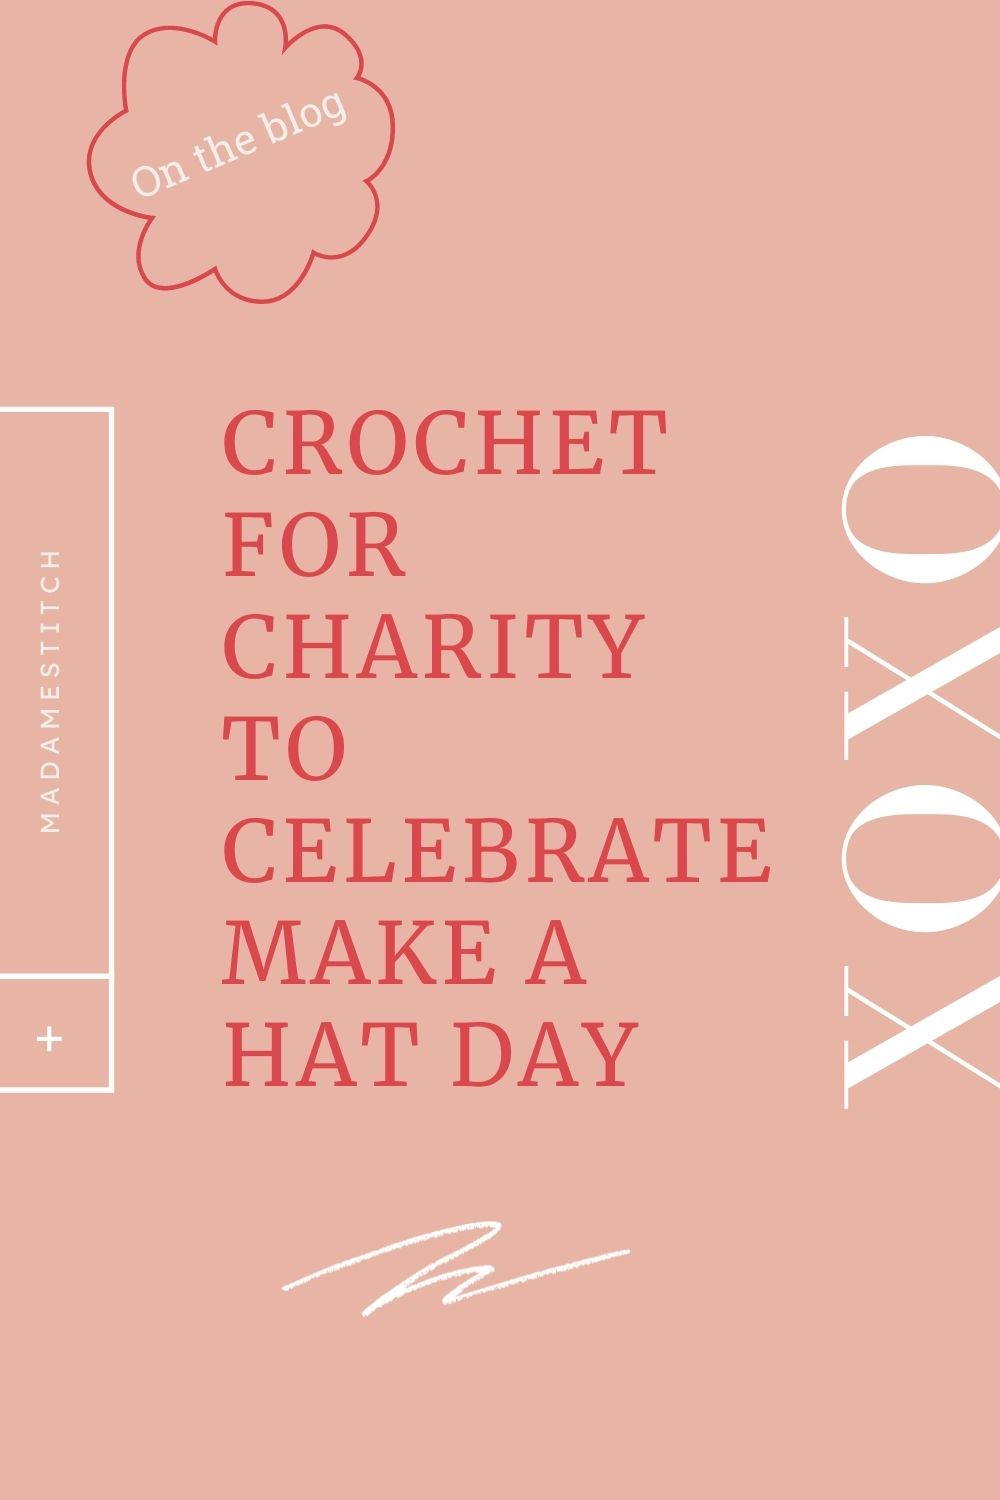 Crochet for Charity on Make a Hat Day   blog post by MadameStitch